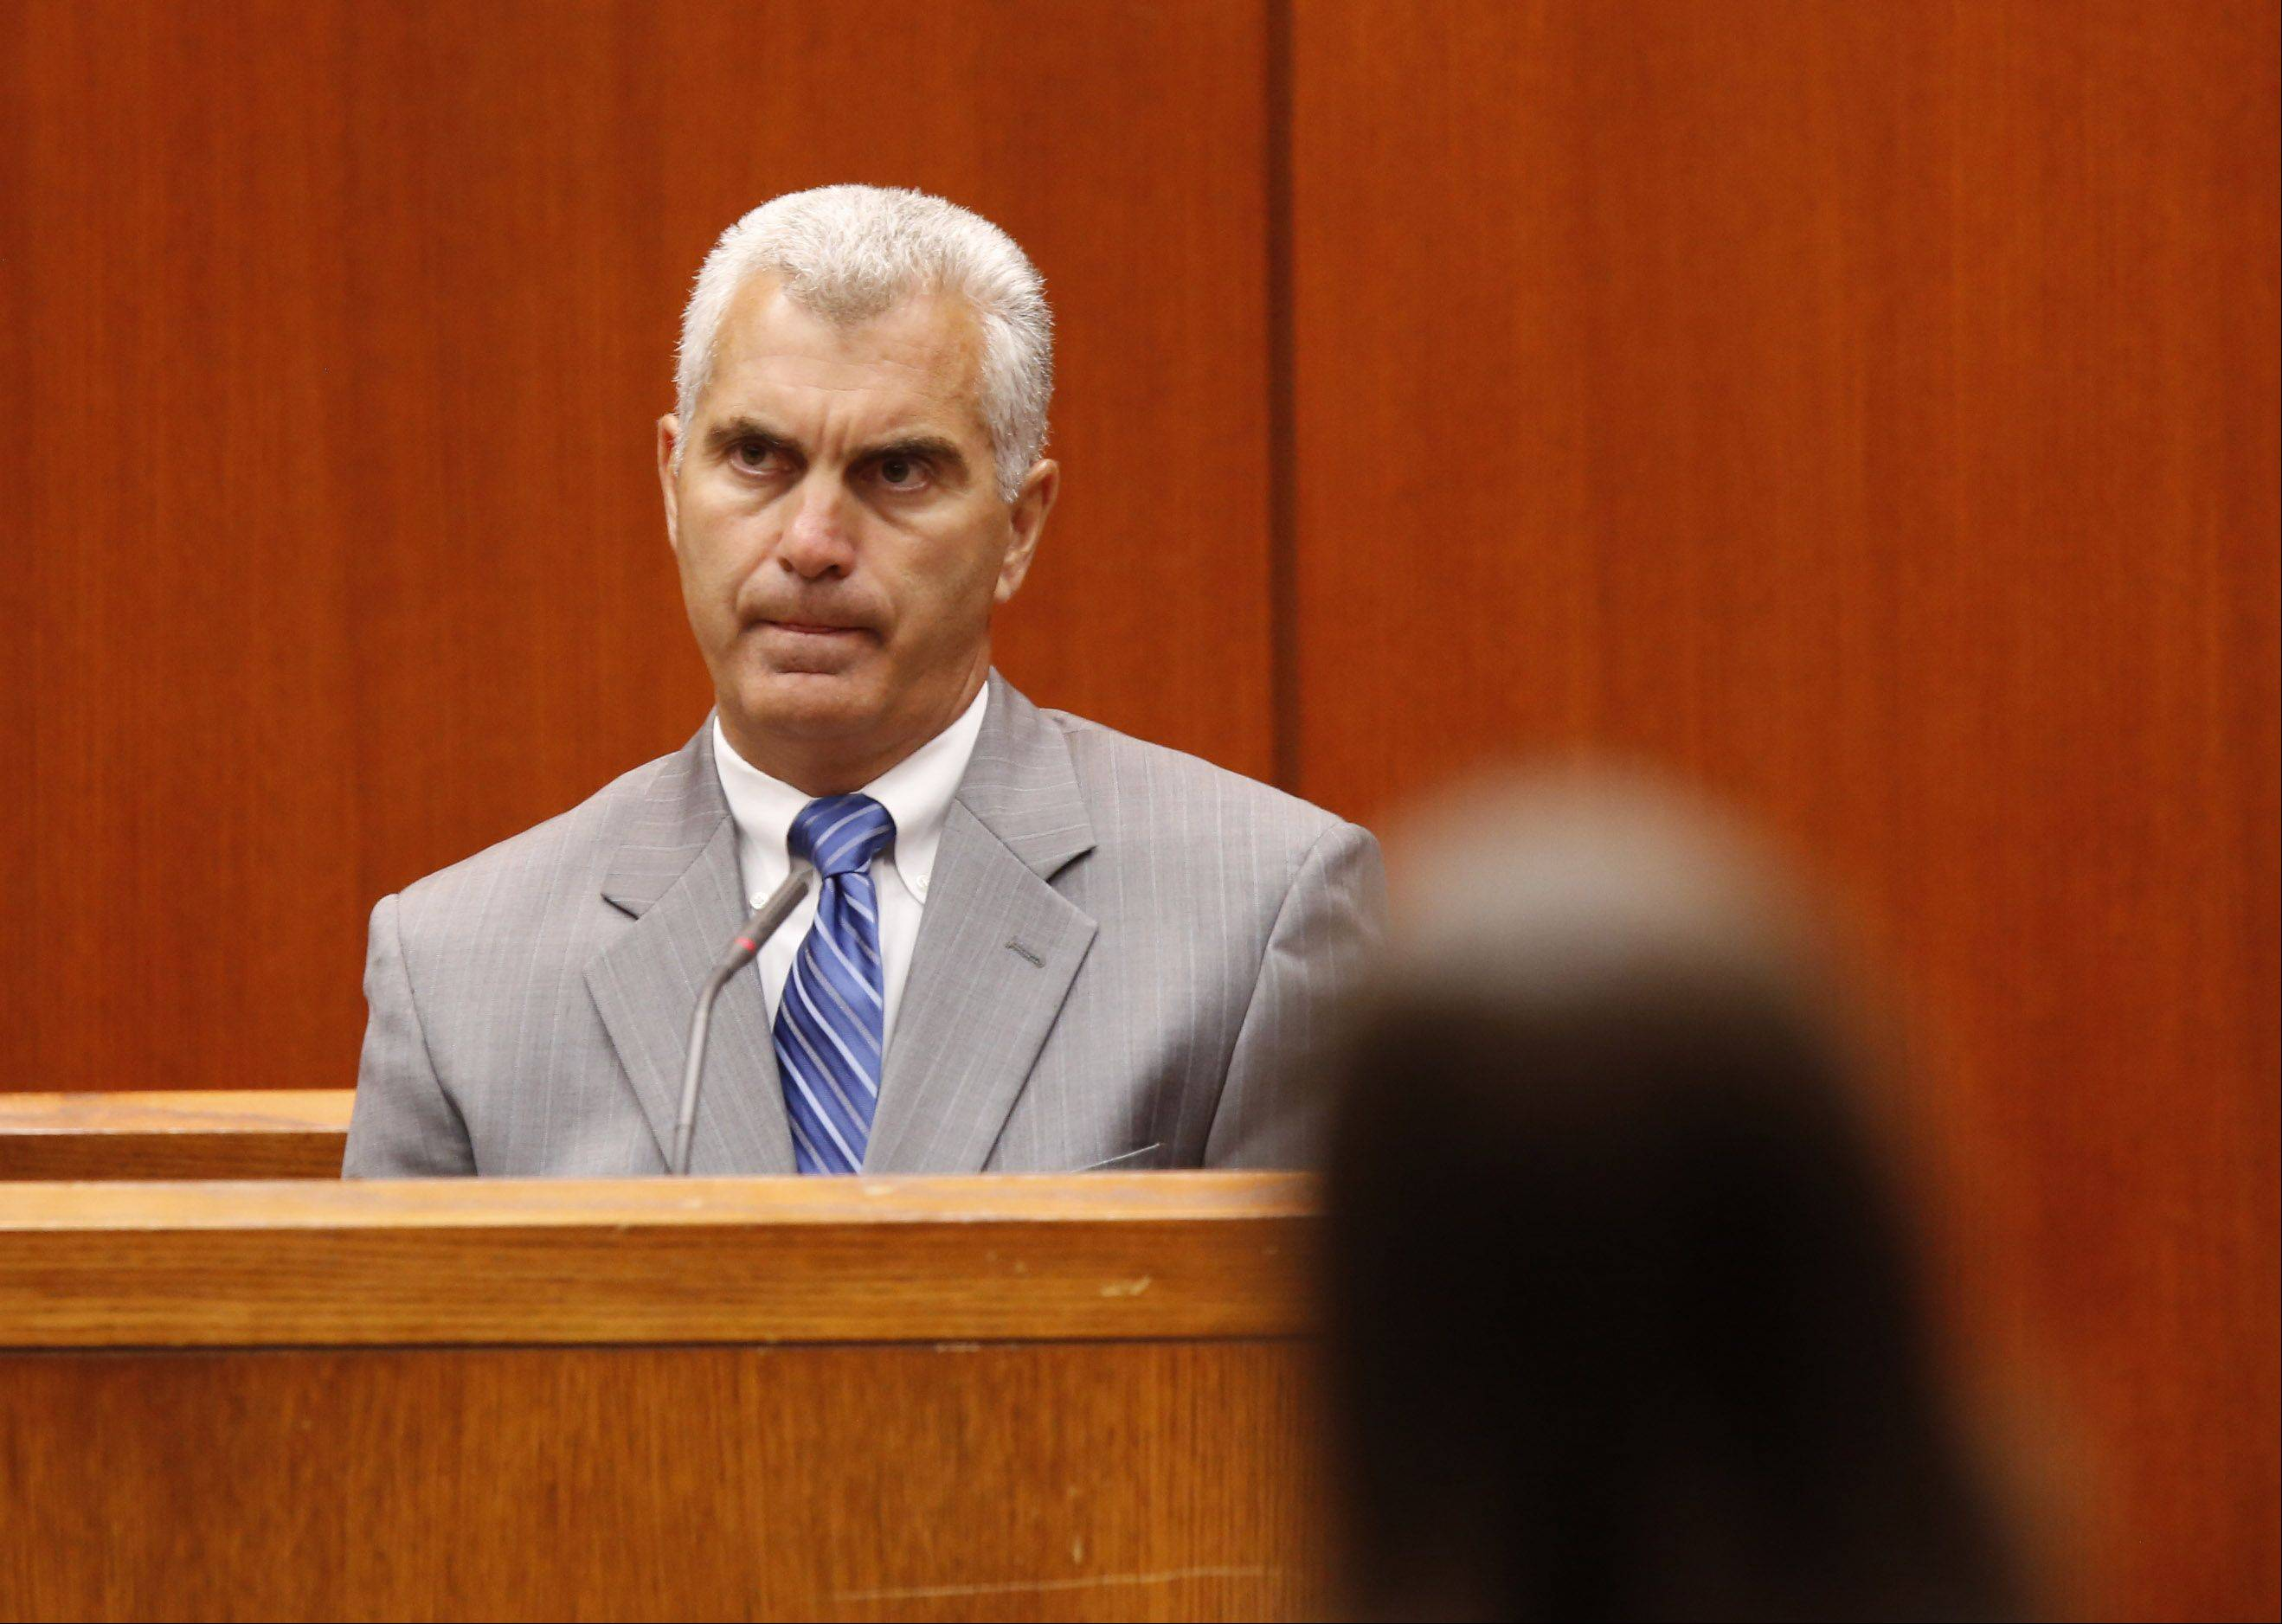 DuPage County Assistant State's Attorney Joe Ruggiero addresses the court Monday during the sentencing of Jacob Nodarse at the DuPage County Courthouse in Wheaton.